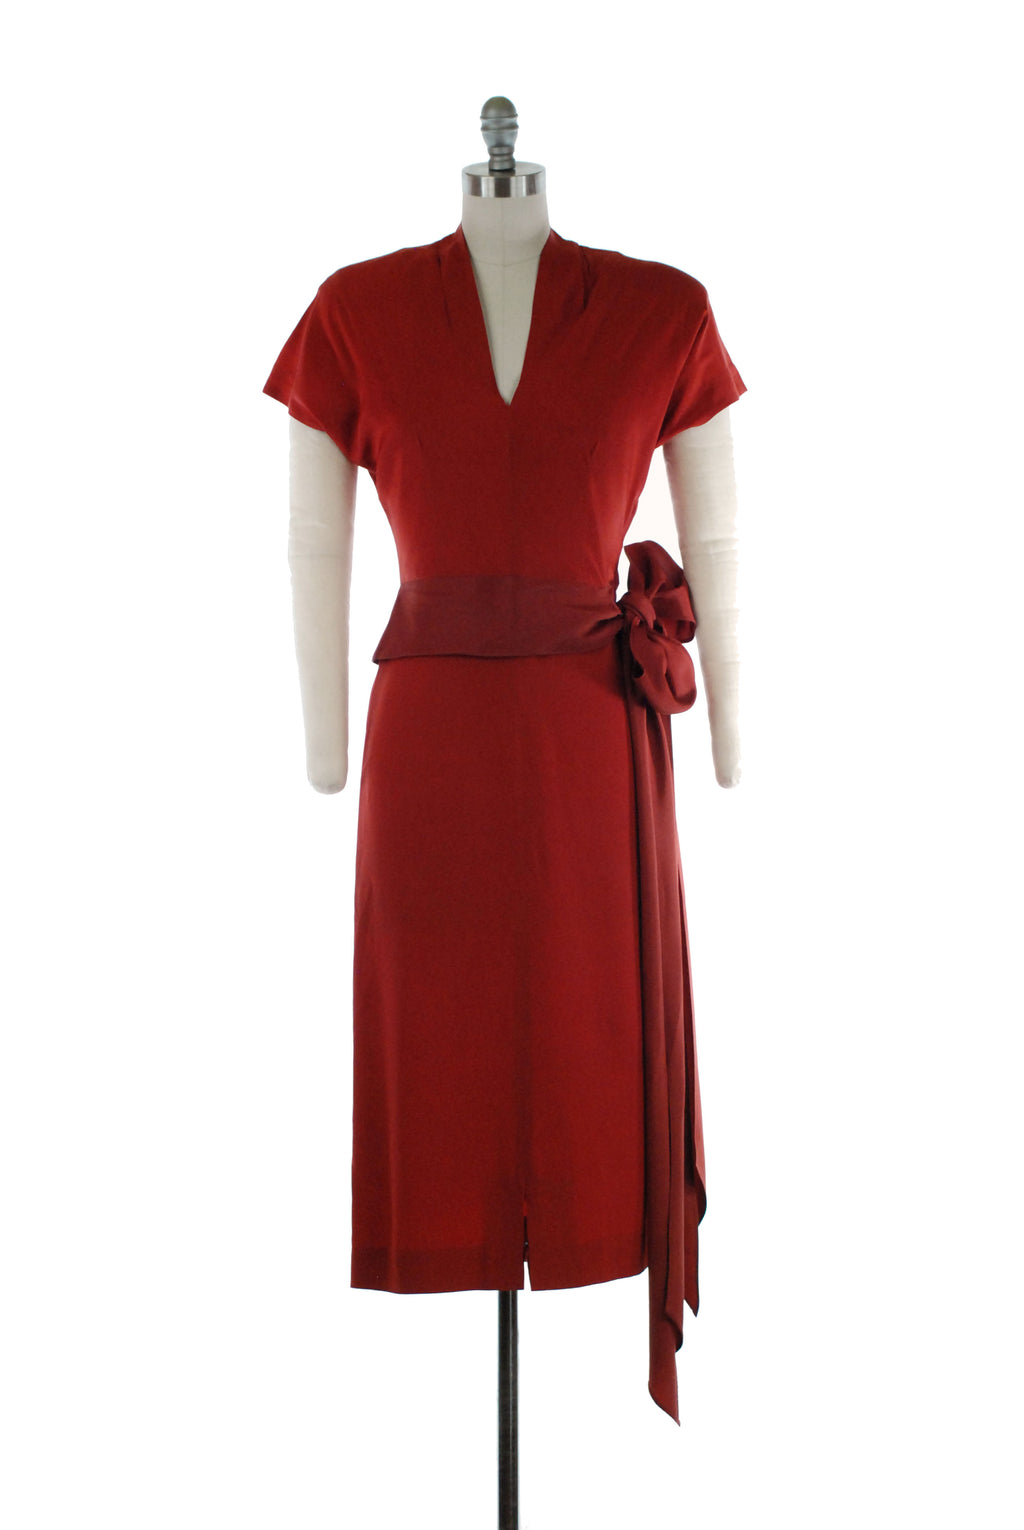 Rich 1940s Cinnamon Red Rayon Dress with Long Attached Sash